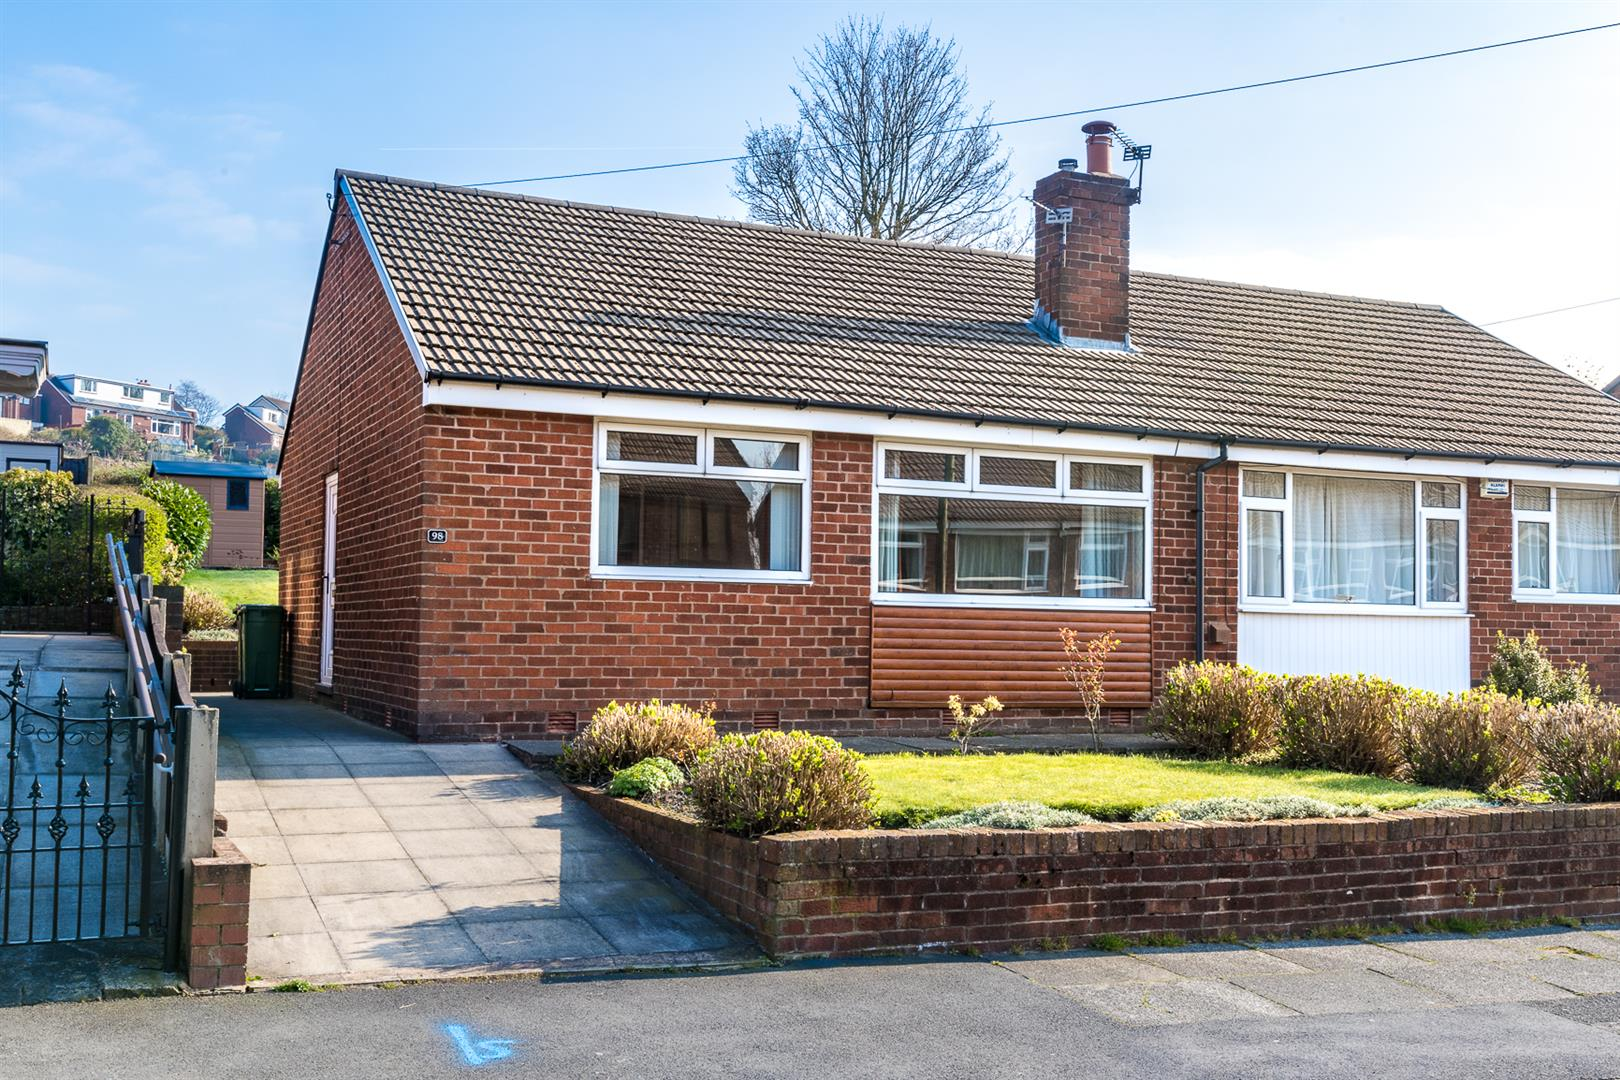 2 Bedroom Semi Detached Bungalow Sale Agreed Image 0